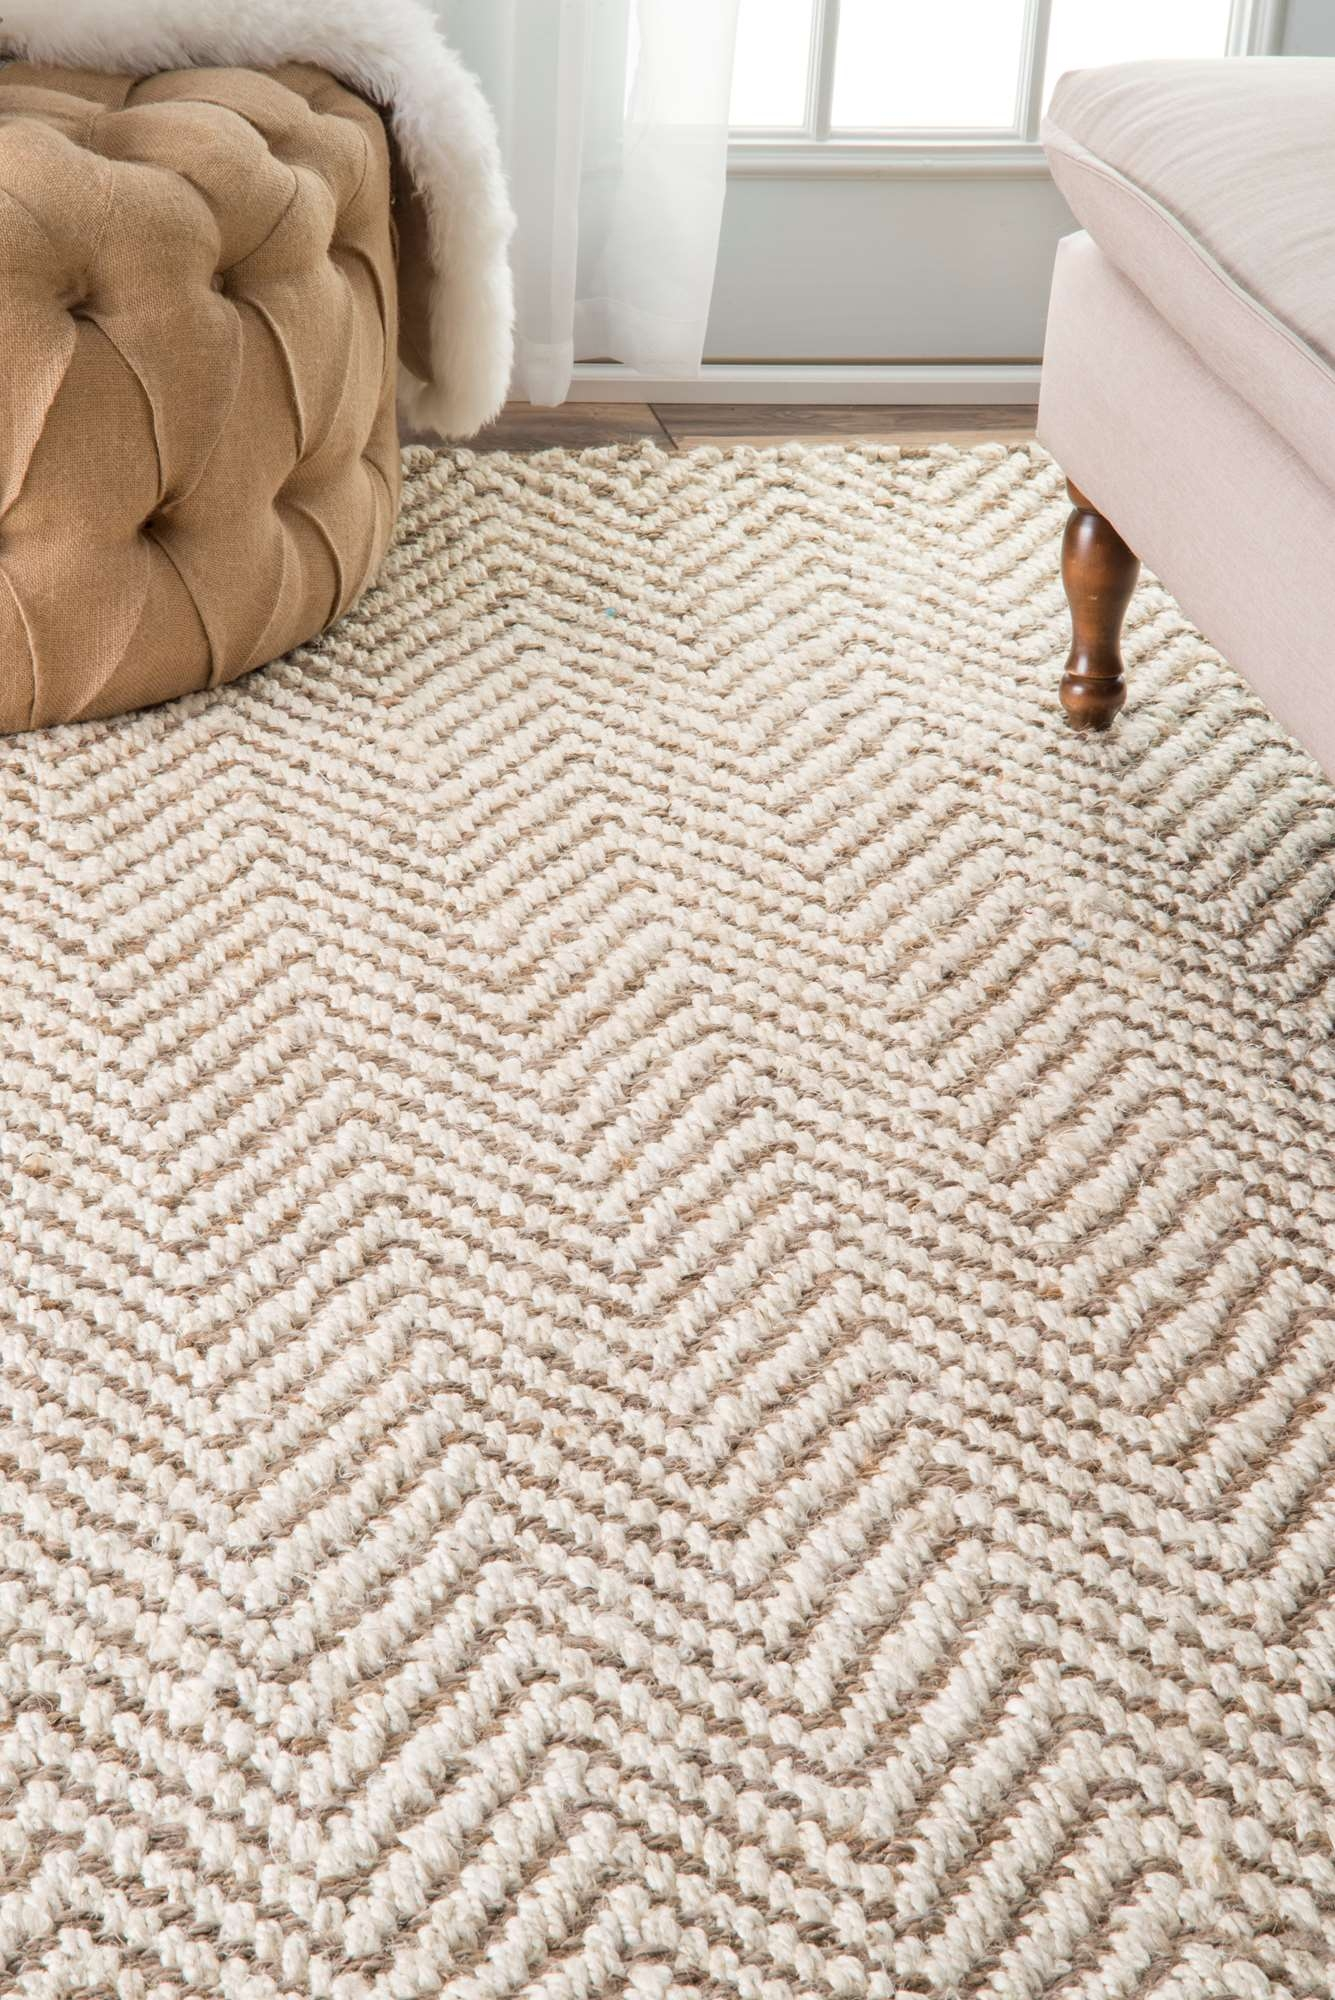 15 inspirations of wool jute area rugs for Area rugs and carpets